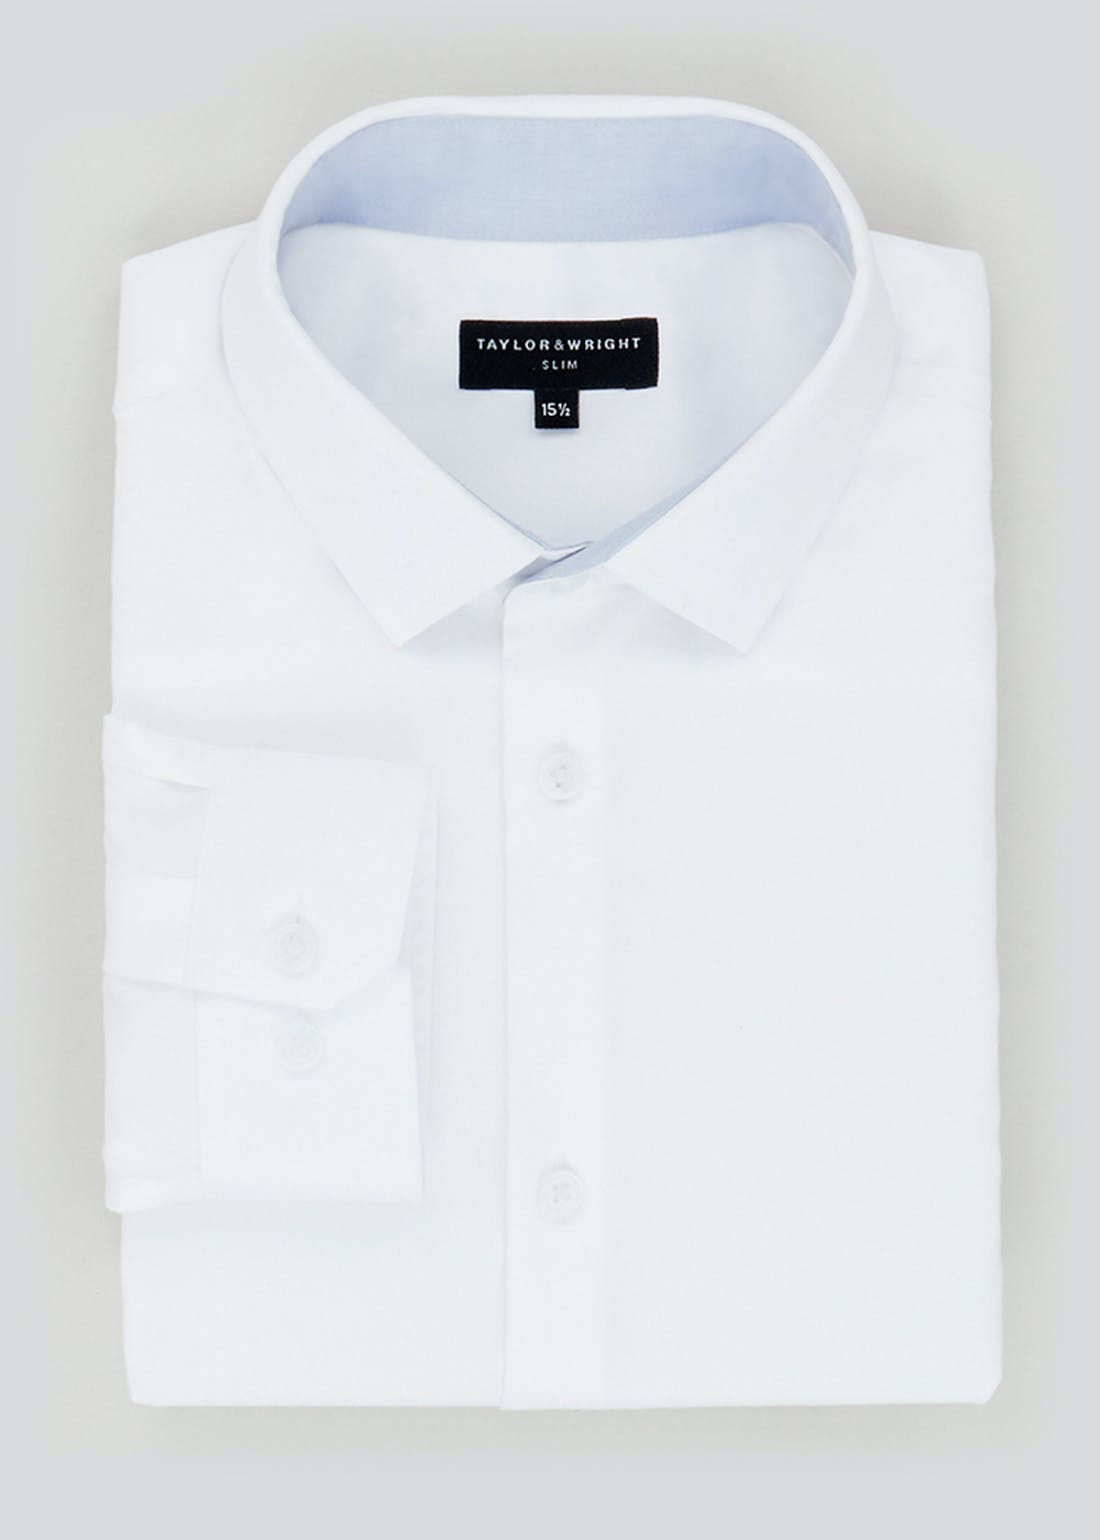 Taylor & Wright Premium Slim Fit Shirt